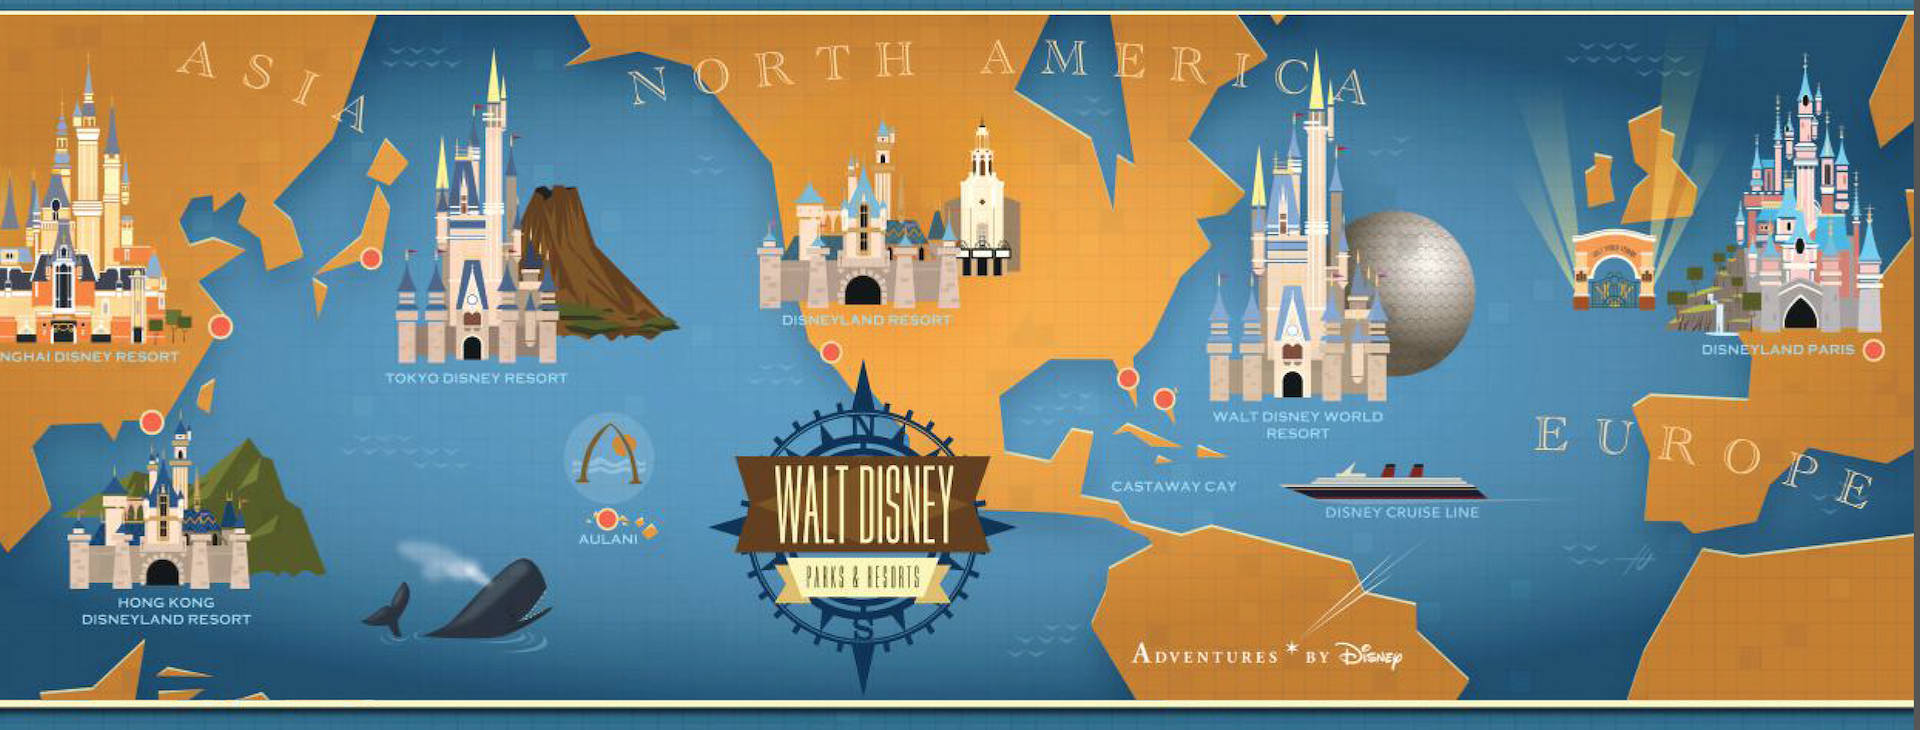 history of the disneyland park founded and created by walt disney Walt disney dreamed of disneyland long before it opened in 1955 the park has been thoroughly updated, but visitors can still find pockets of disney history if they.